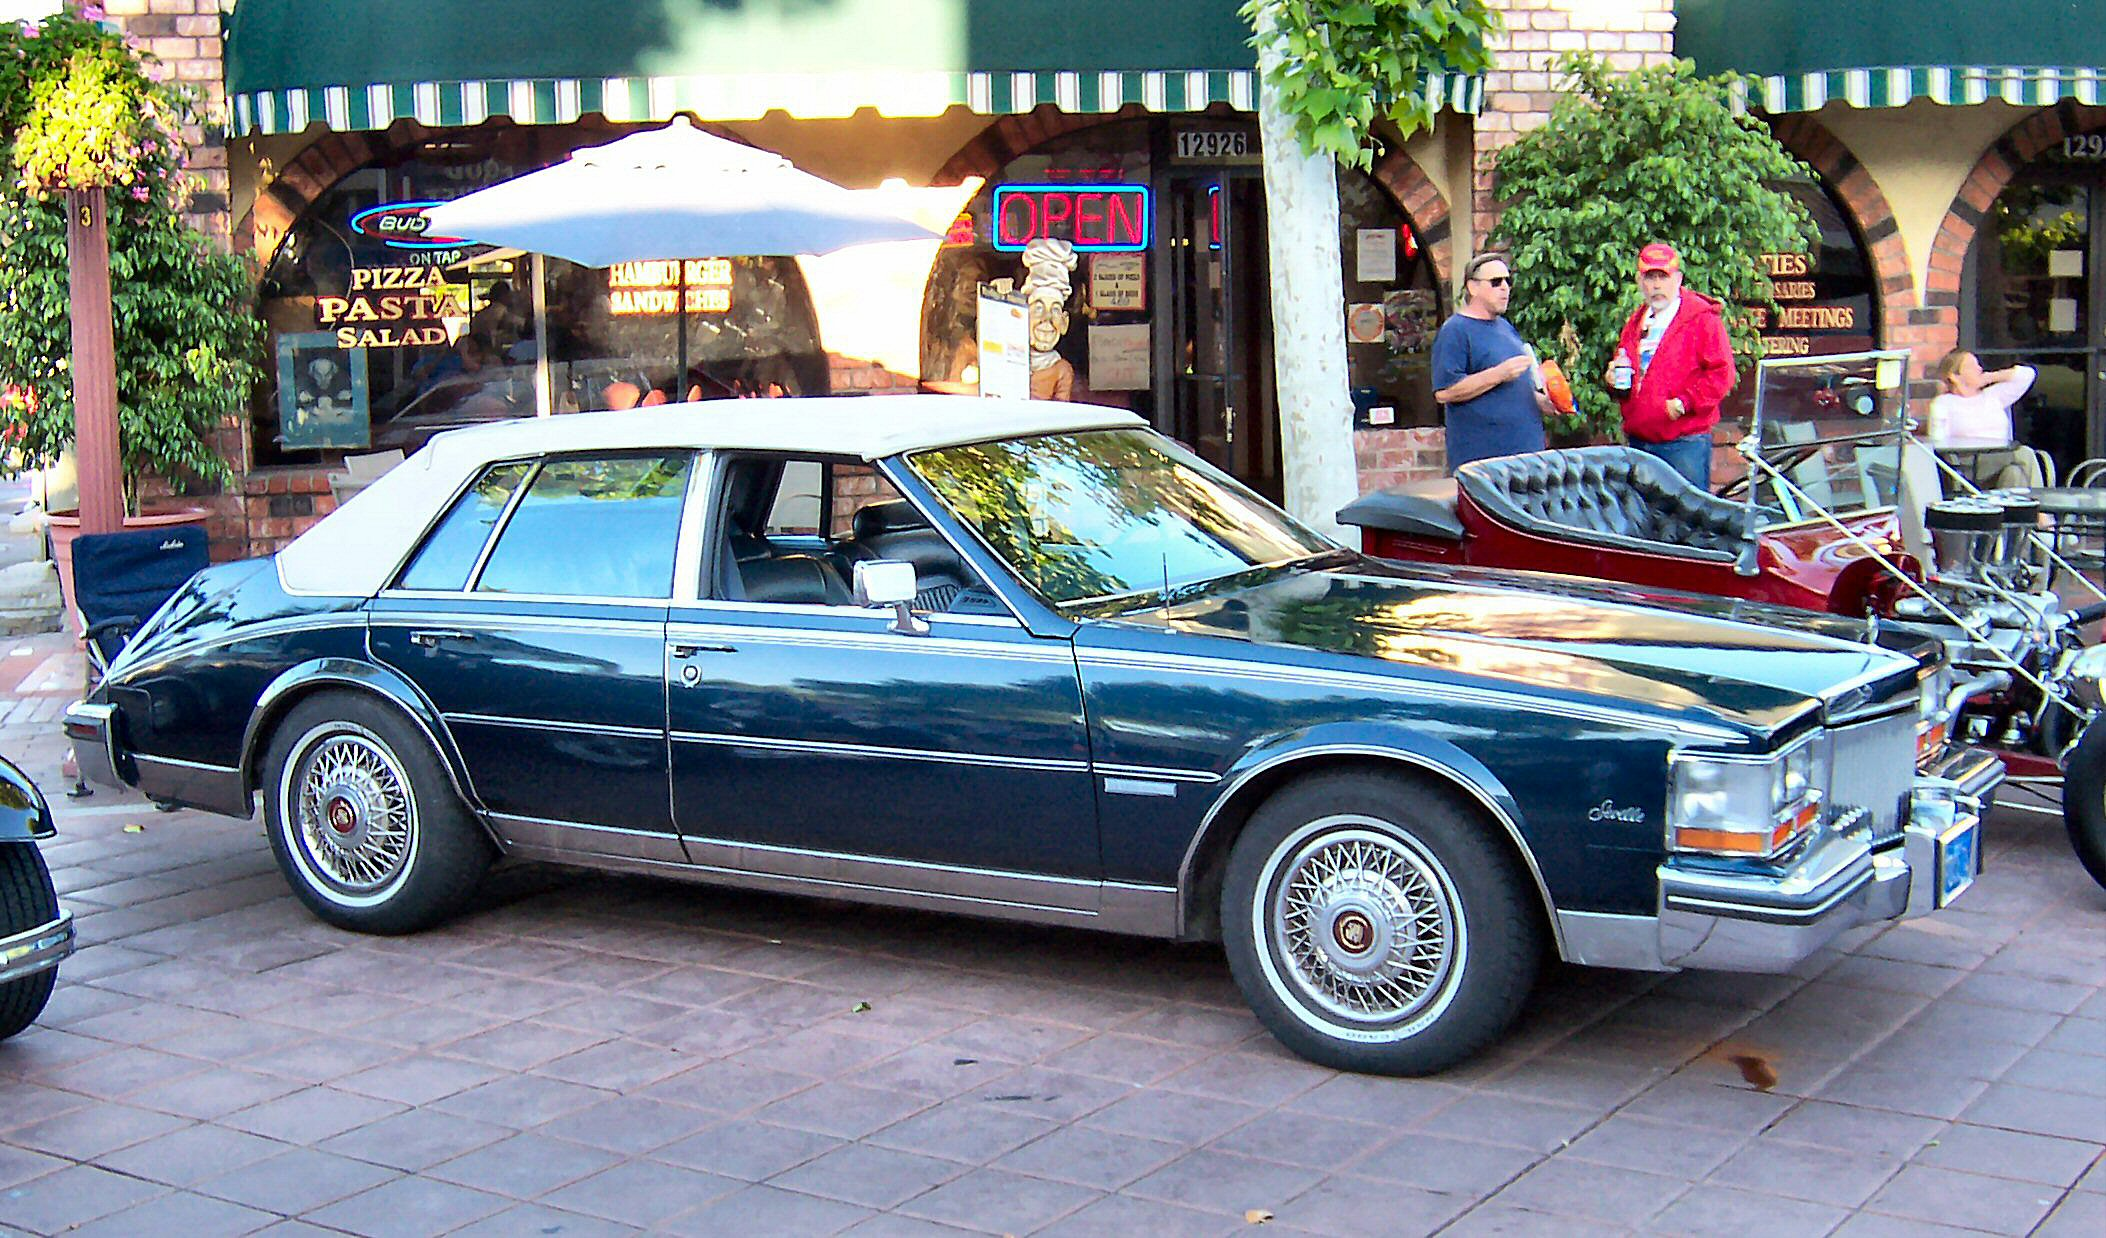 cadillac seville 1985 12 1985 cadillac seville information and photos momentcar  at webbmarketing.co